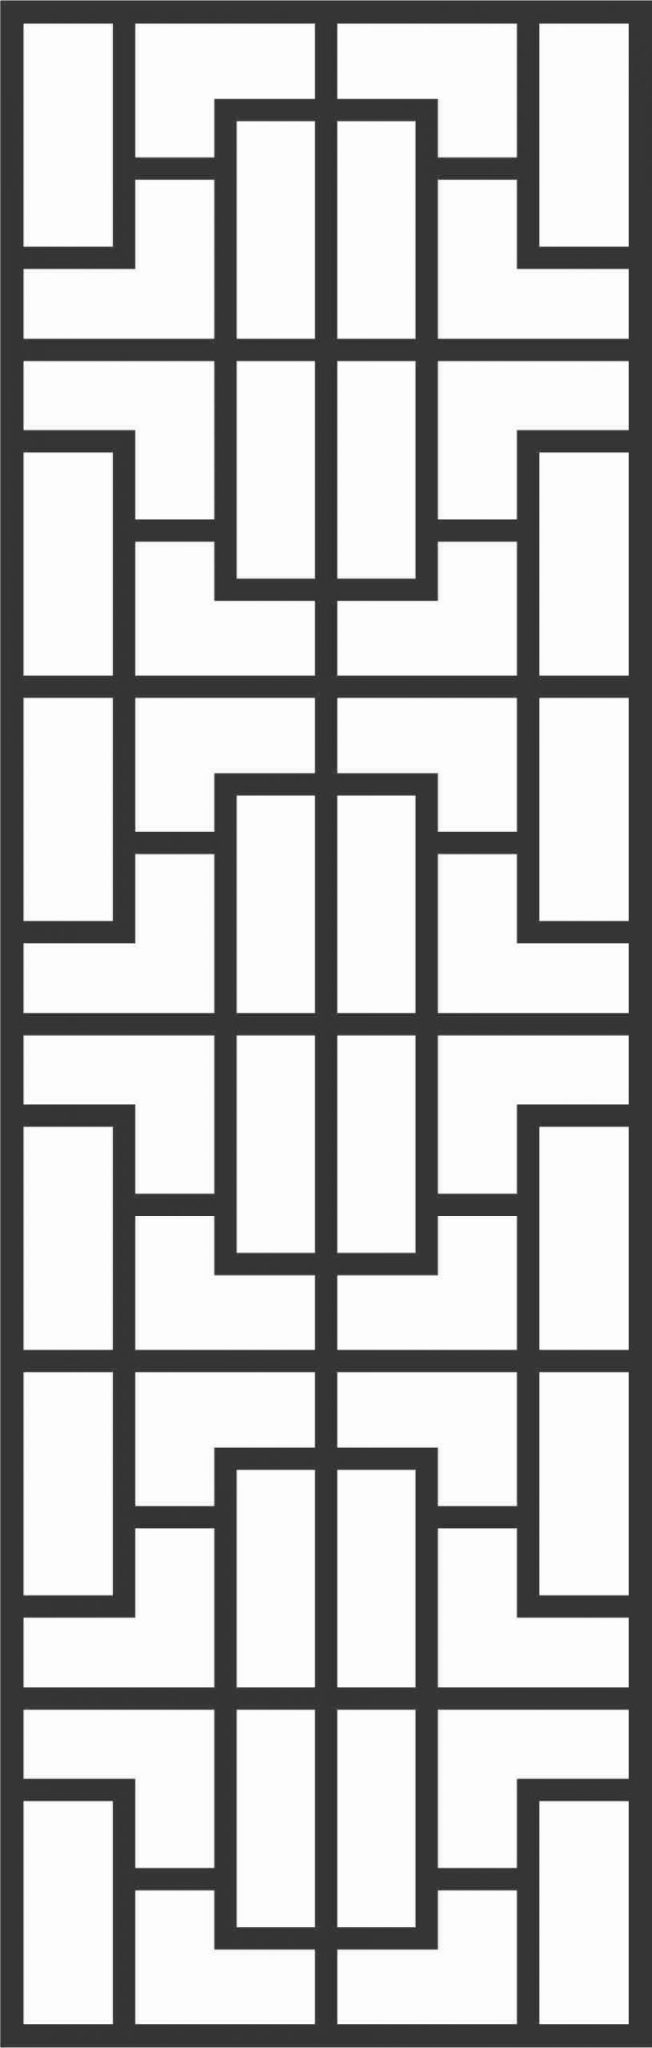 Decorative Screen Patterns For Laser Cutting 79 Free DXF File